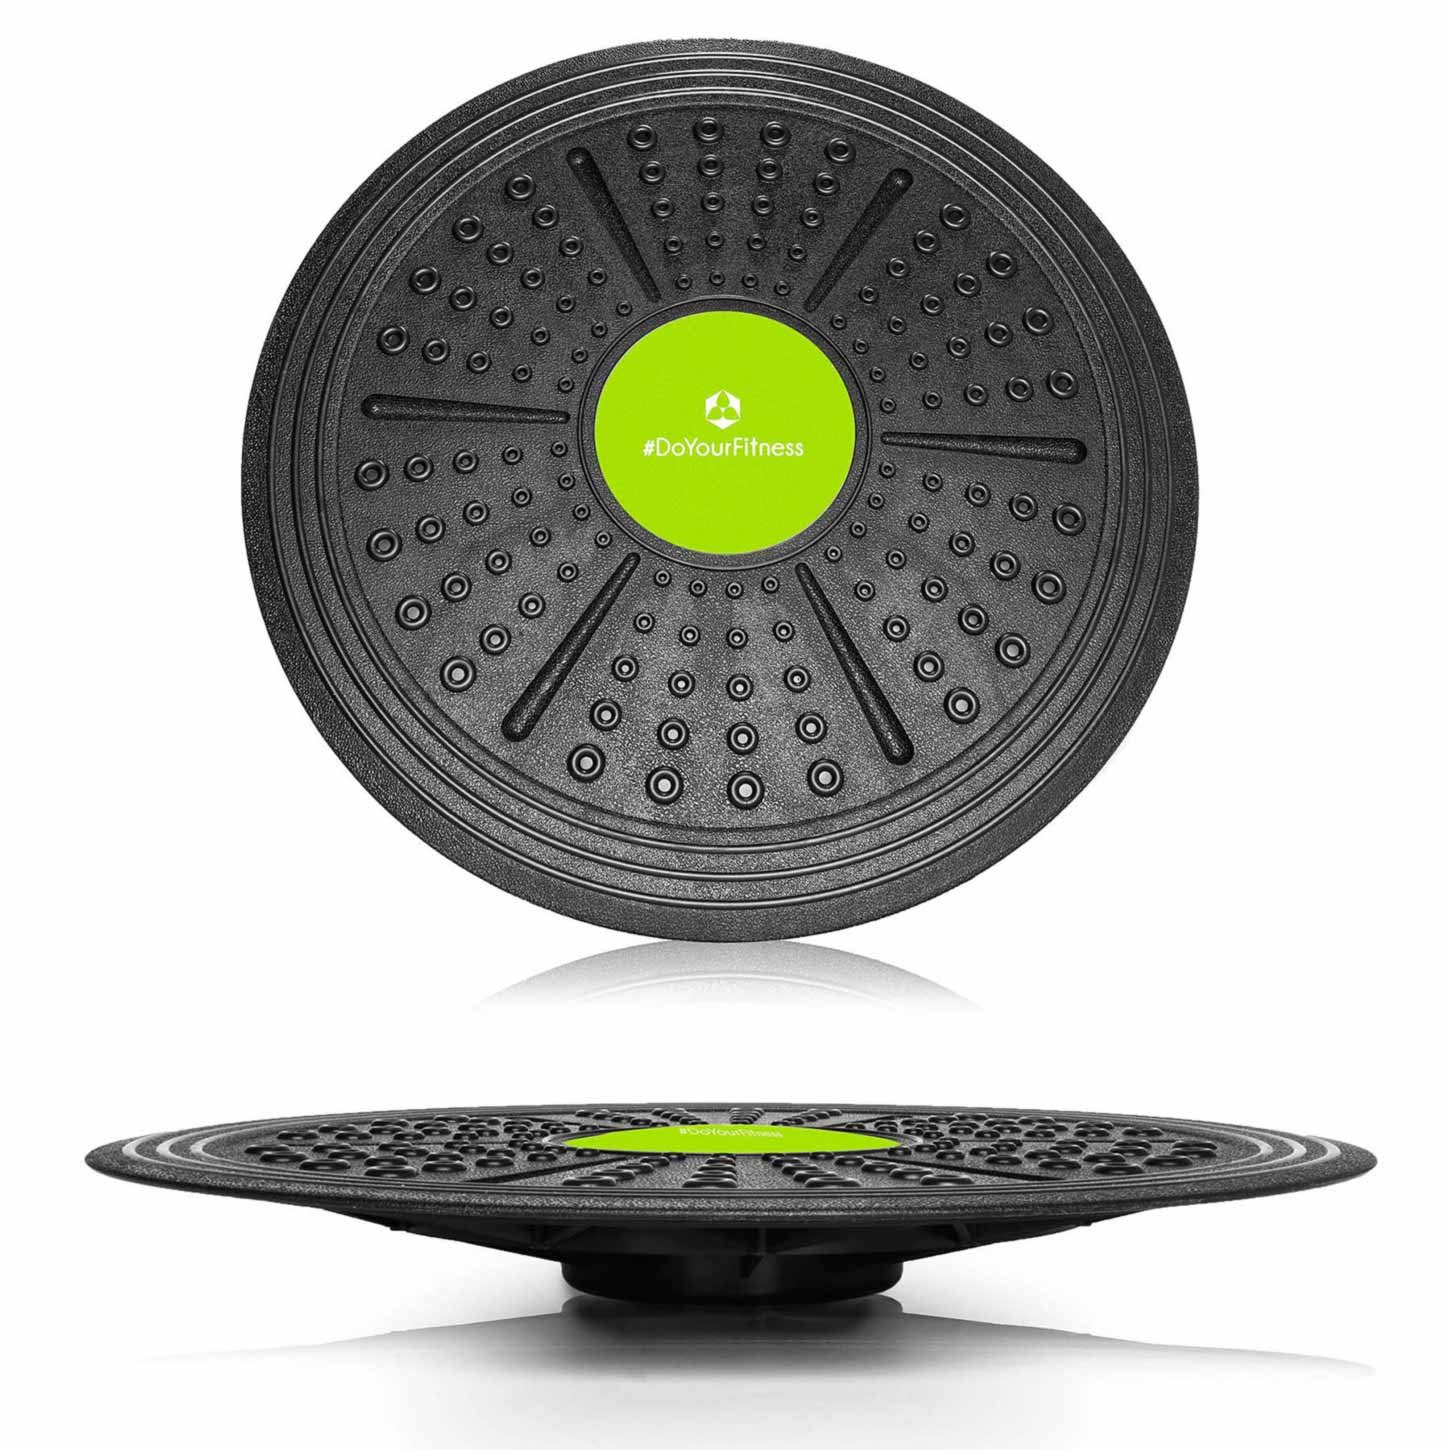 Round »Circulum« - balance-board / coordination board for fitness and therapy / in two sizes: 36 cm and 40.5 cm / Large ca. 40.5*5.5cm #DoYourSports